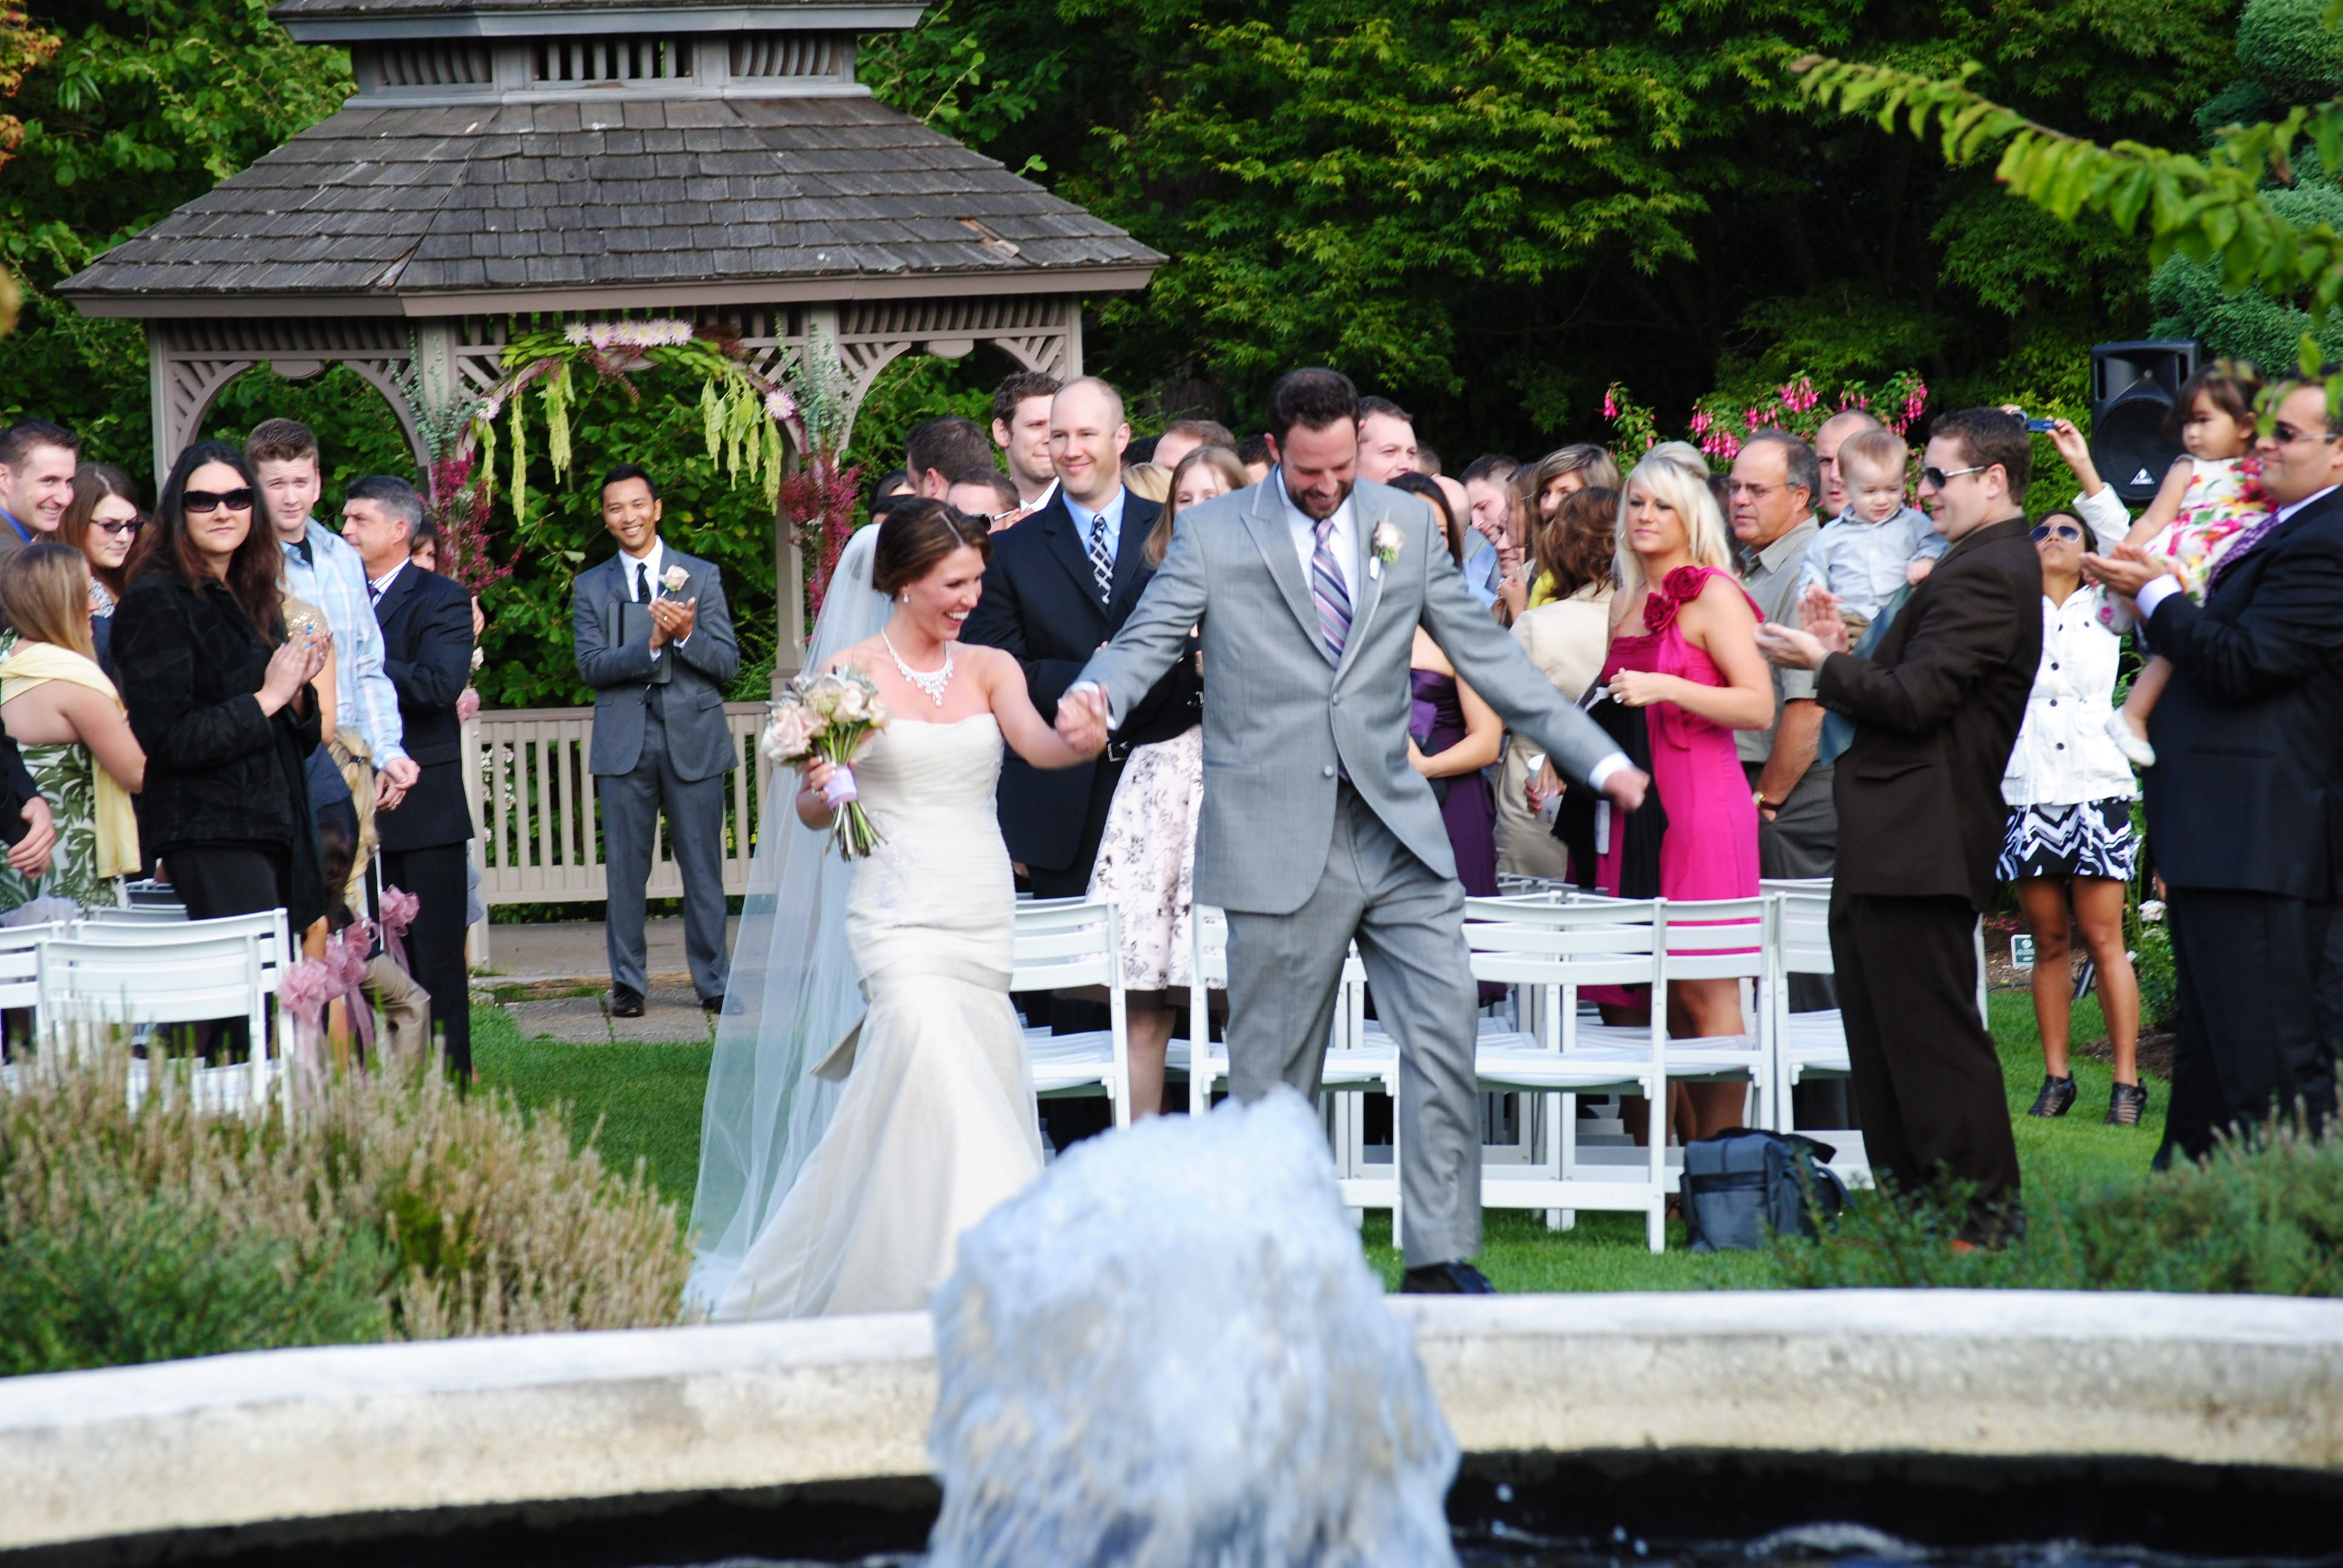 With Over 280 Vibrant Species Of Roses The Rose Garden Near Woodland Park Zoo Is Perfect Backdrop For Your Outdoor Ceremony A Picturesque Gazebo And